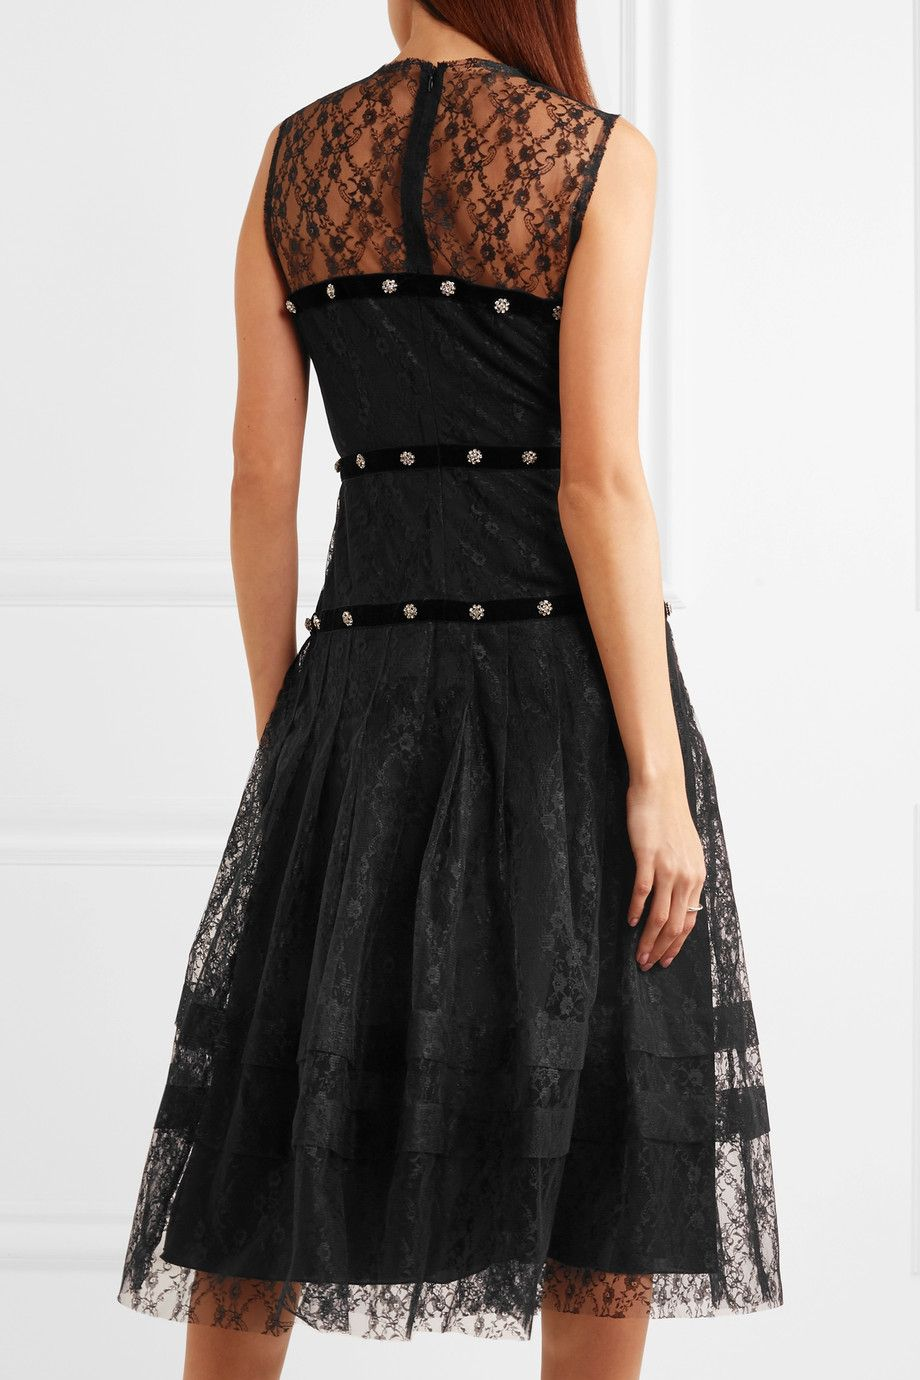 Clearance Factory Outlet 100% Original Cheap Online Embellished Velvet-trimmed Pleated Lace Midi Dress - Black Philosophy di Lorenzo Serafini 2018 Cheap Online nSYQm9